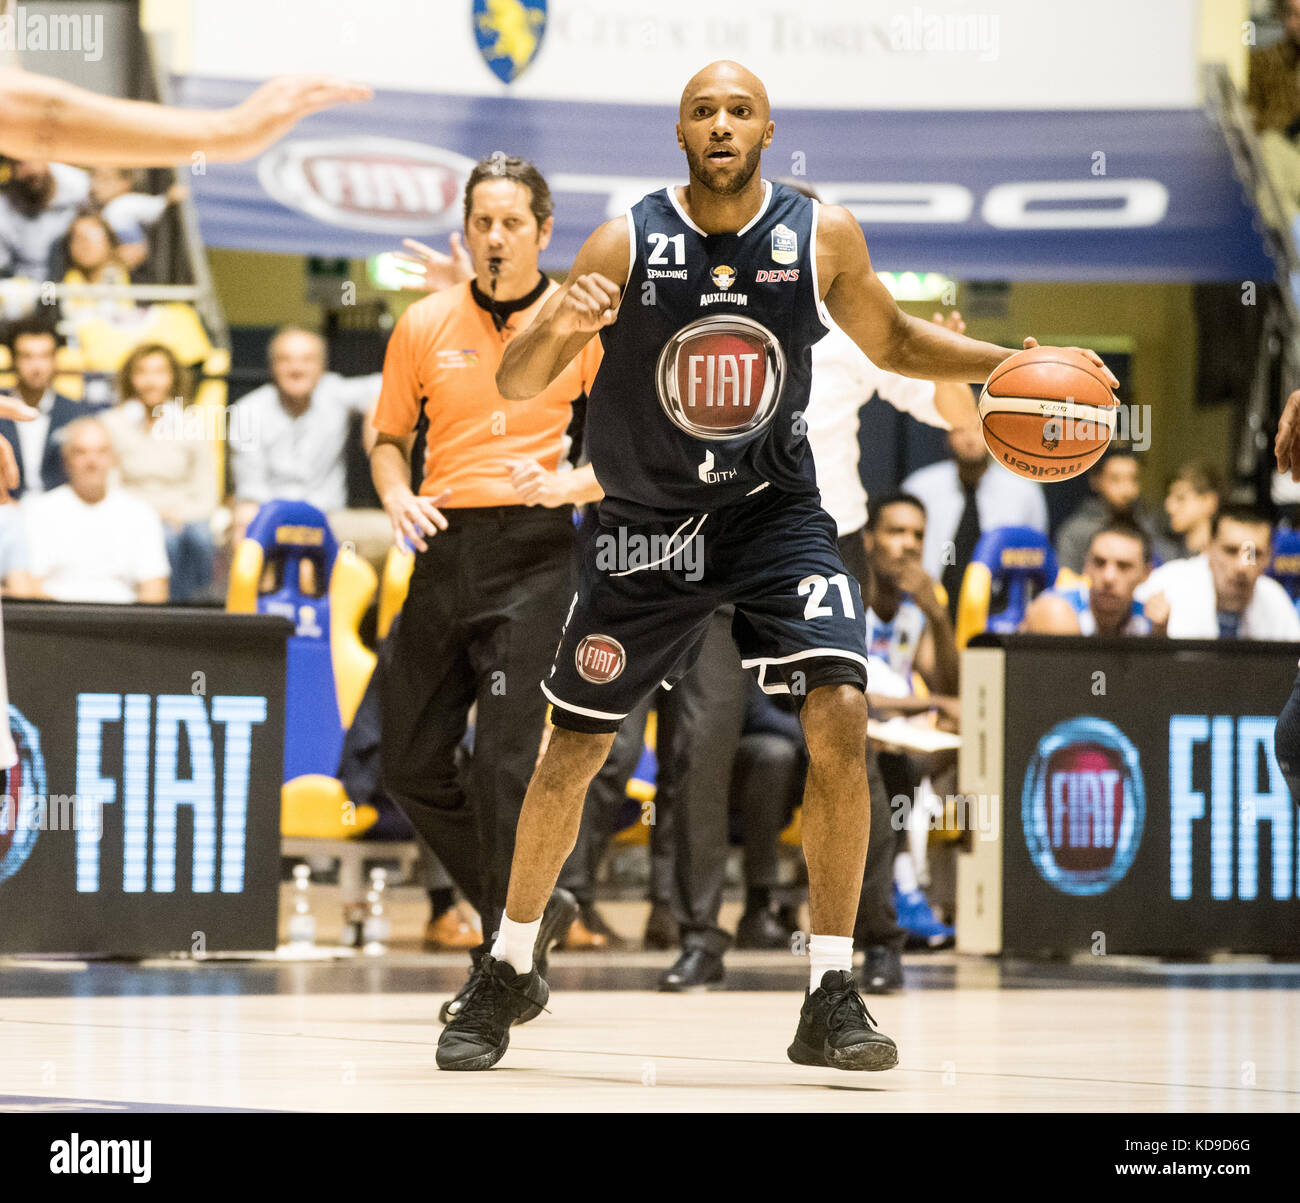 Andre Jones during the  Serie A an Basketball match Fiat Torino Auxilium vs Dinamo Sassari at PalaRuffini. Torino Stock Photo